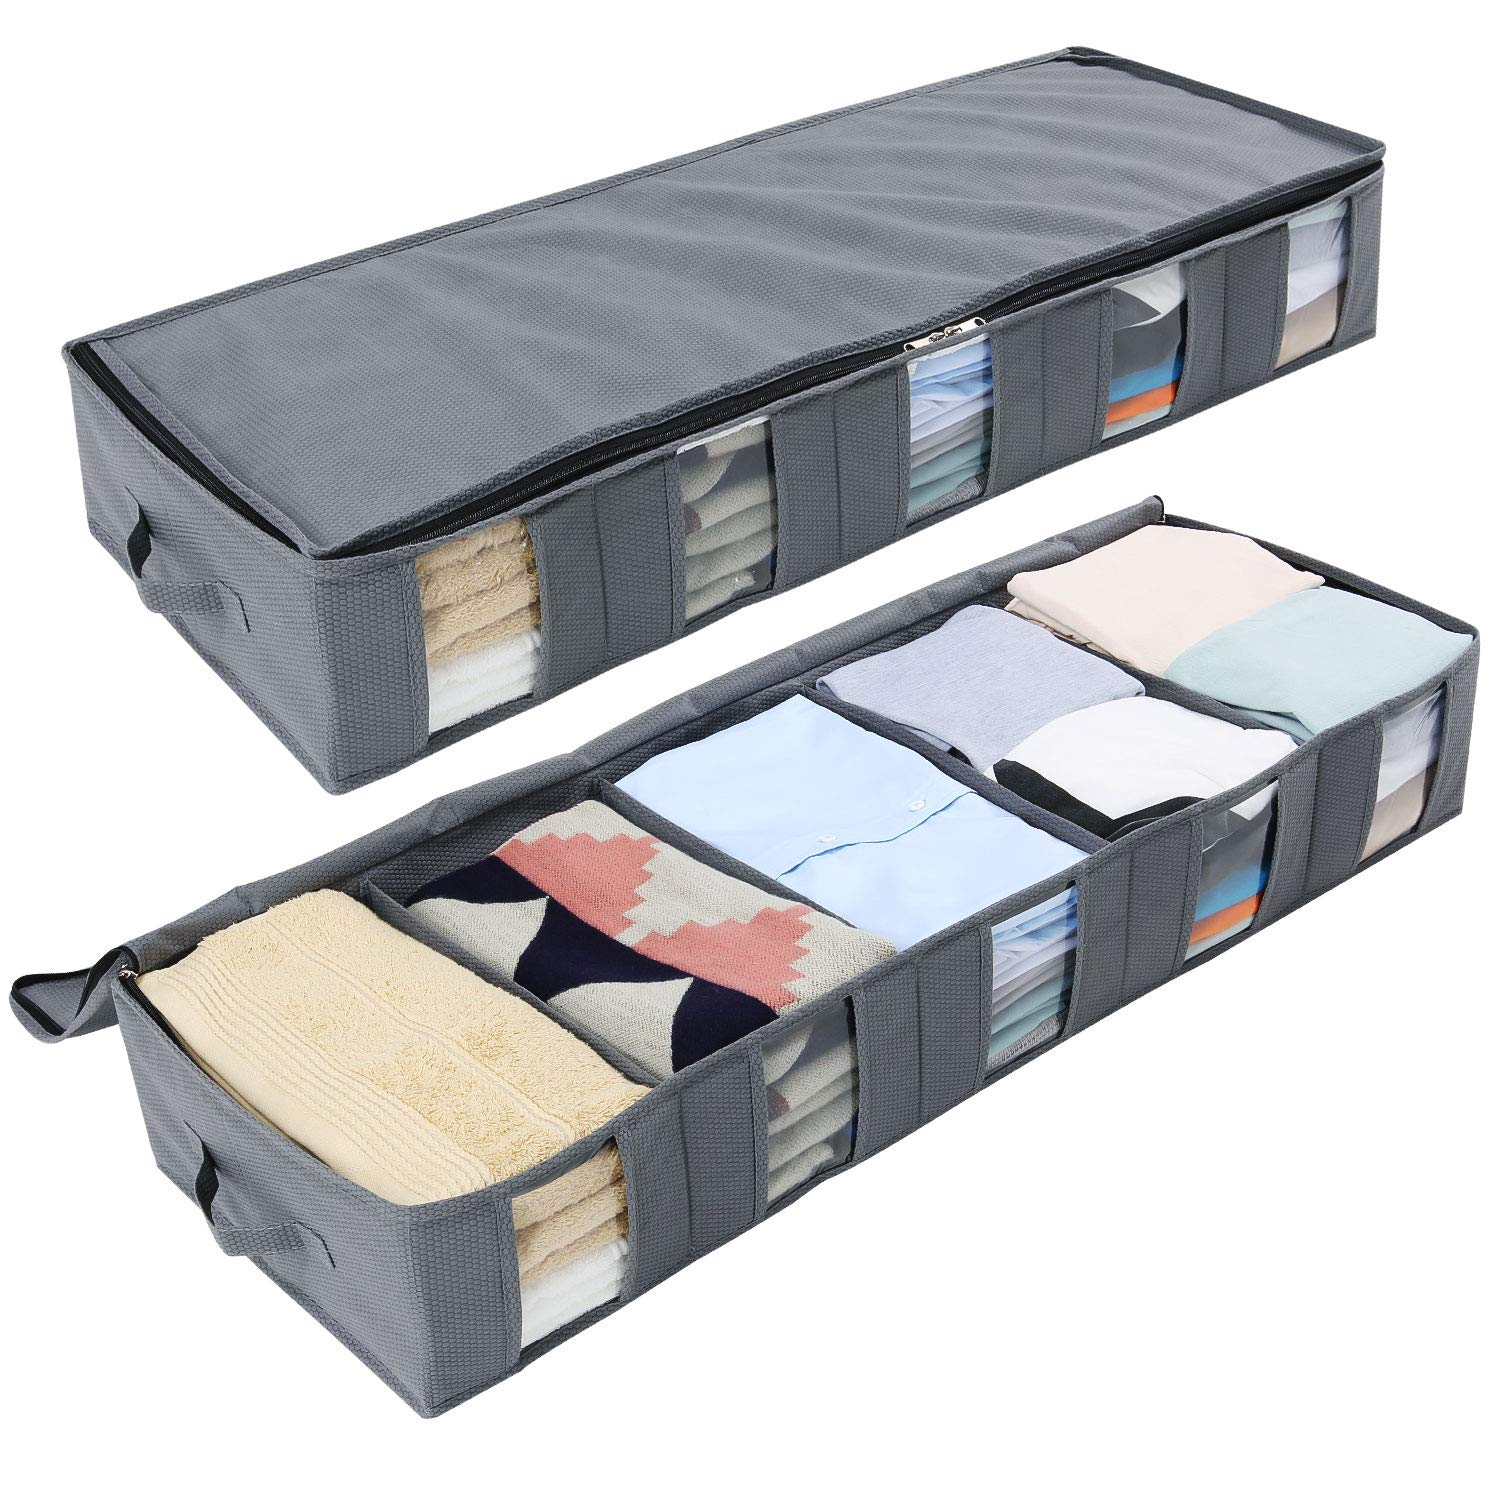 Kids Toys Children Books 16 compartments Pet Toy Lifewit Foldable Storage Bin Rectangular Baskets Containers Cotton Blended Fabric Bins Organizer with Long Rope Handles for Clothes Storage